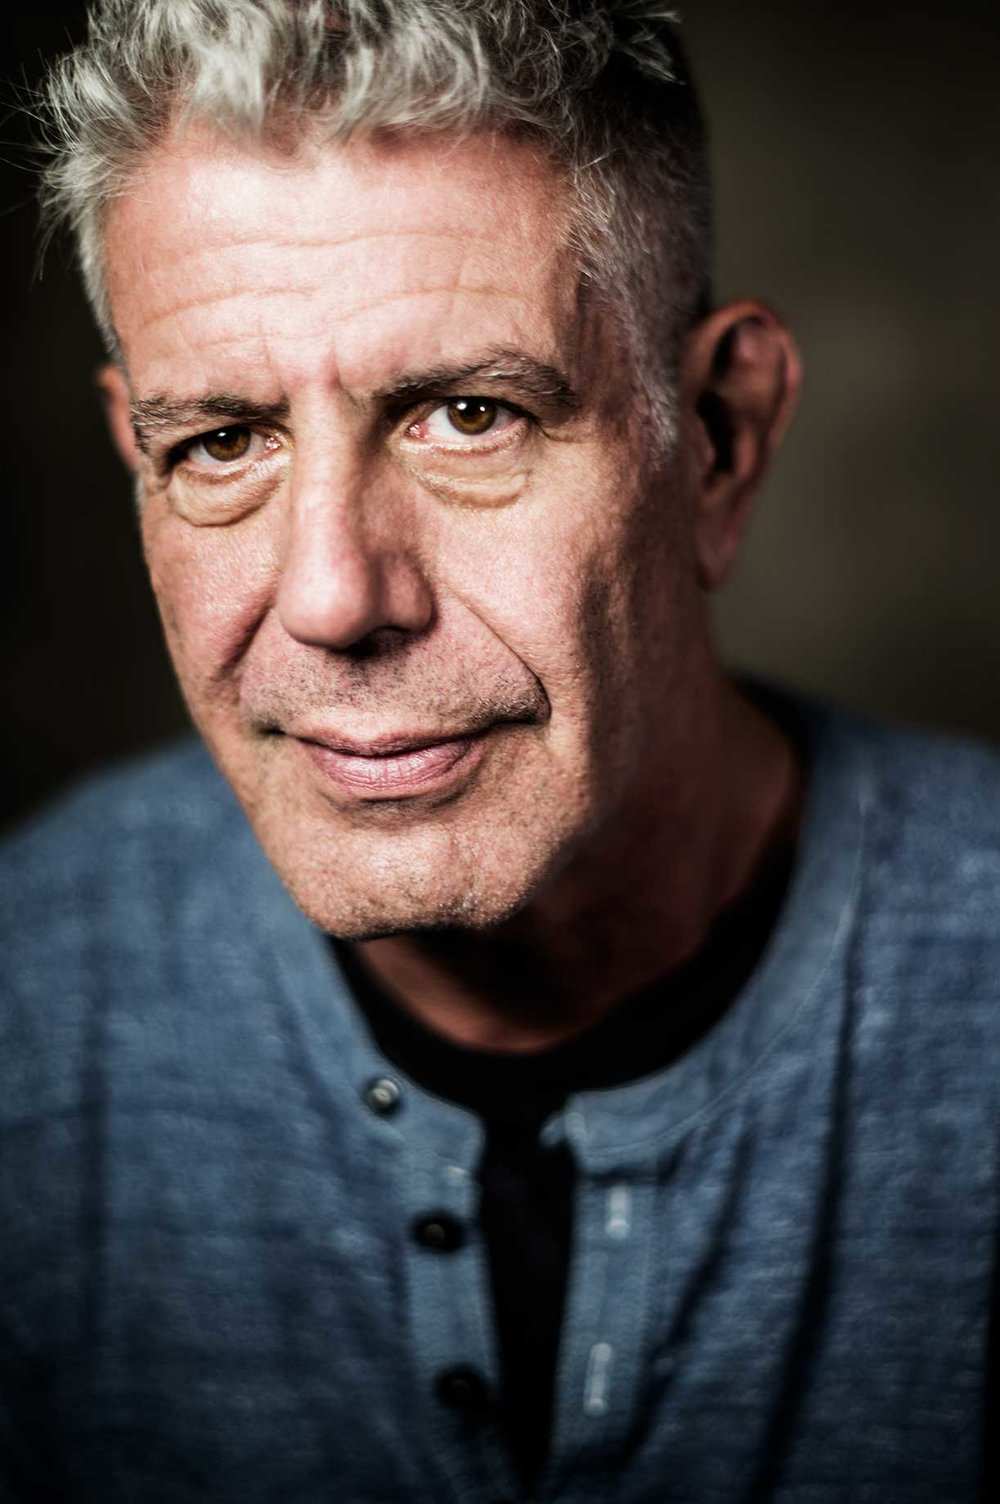 Anthony-Bourdain-480-1.jpg